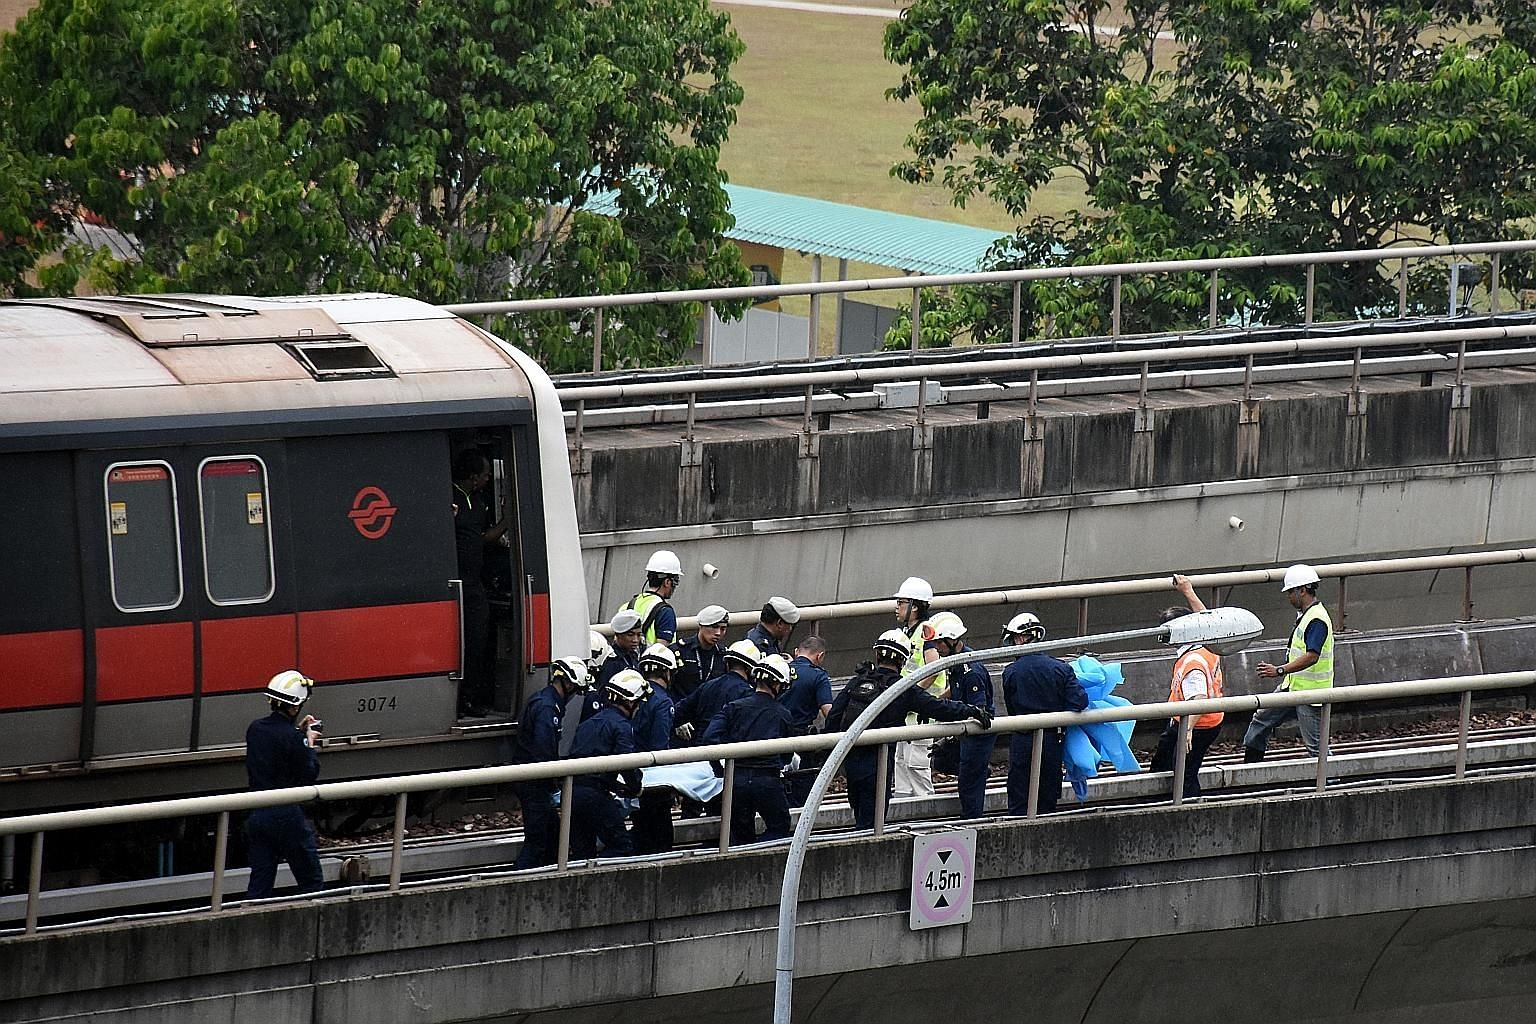 Paramedics from the Singapore Civil Defence Force retrieving the body of one of the two SMRT maintenance staff who were killed in the accident along the train track near Pasir Ris MRT station on March 22 last year.